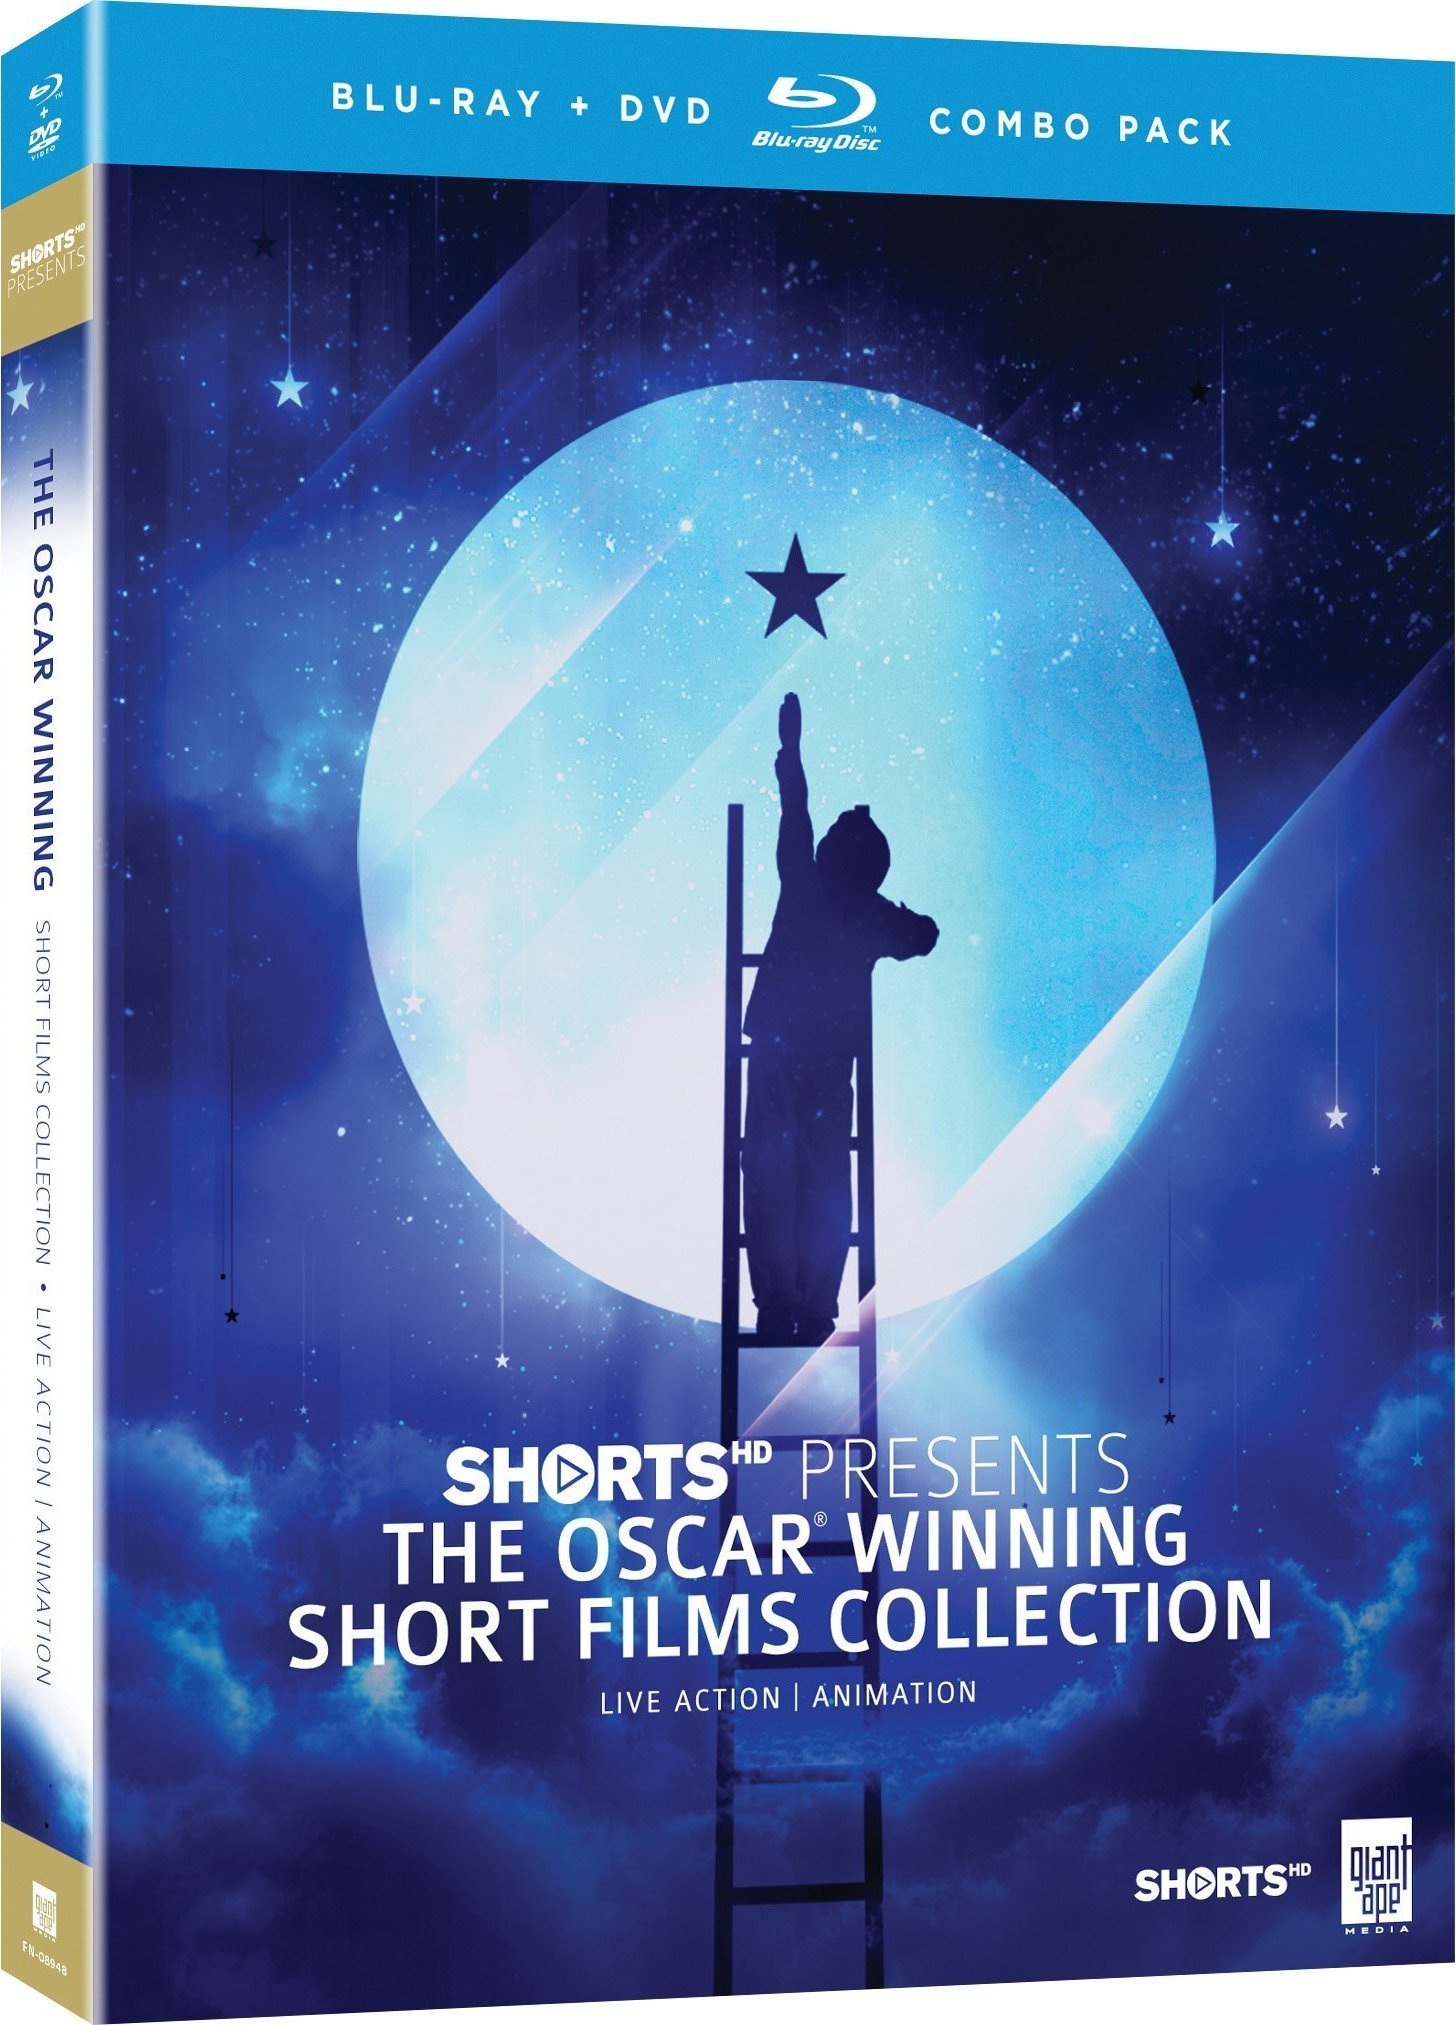 ShortsHD Presents: The Oscar Winning Short Films Collection Blu-ray